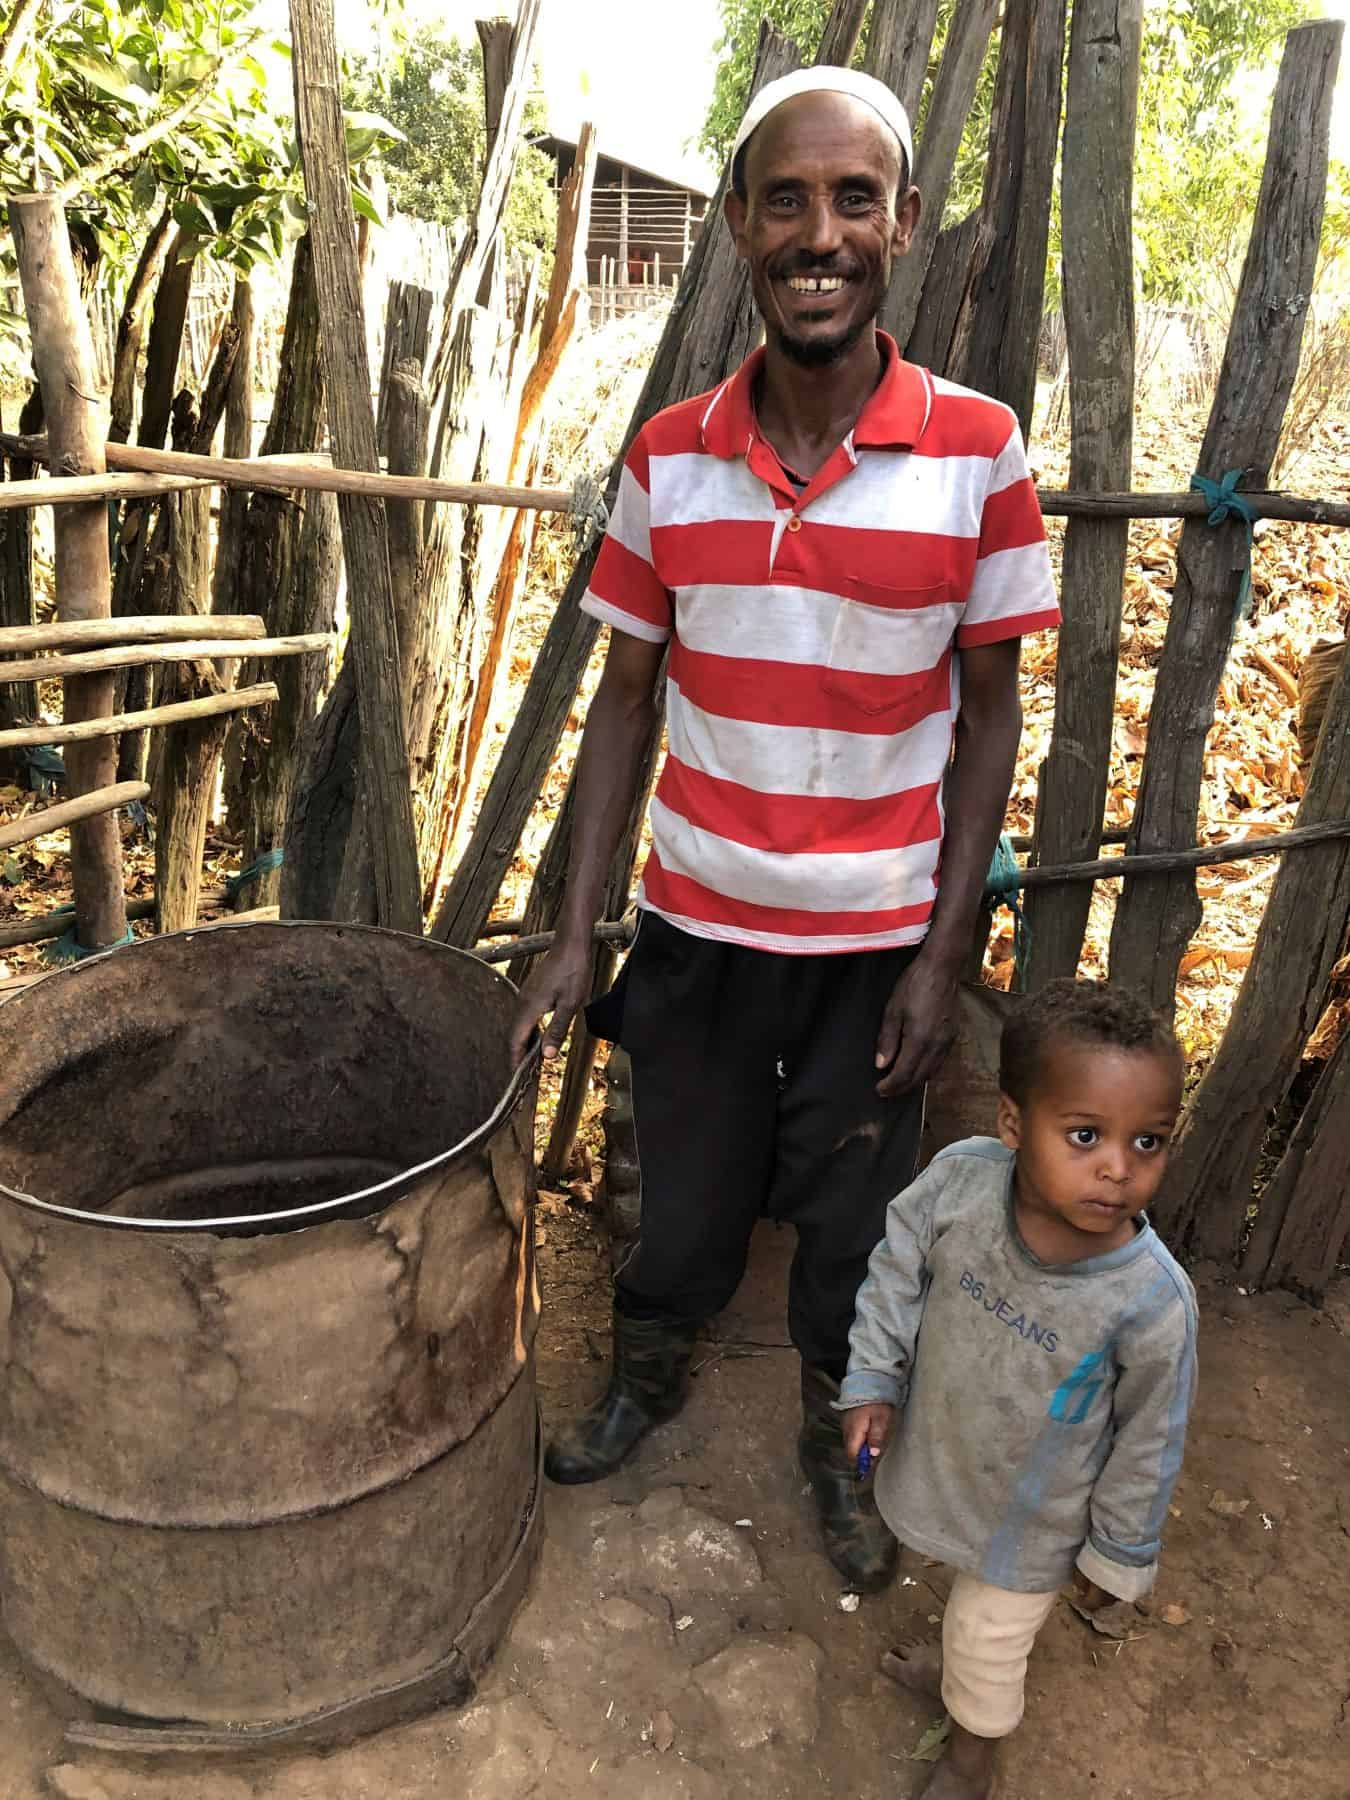 Dinake Hussan smiles while standing with his son beside their family well, knowing their BioSand Filter is making the well water safe to drink